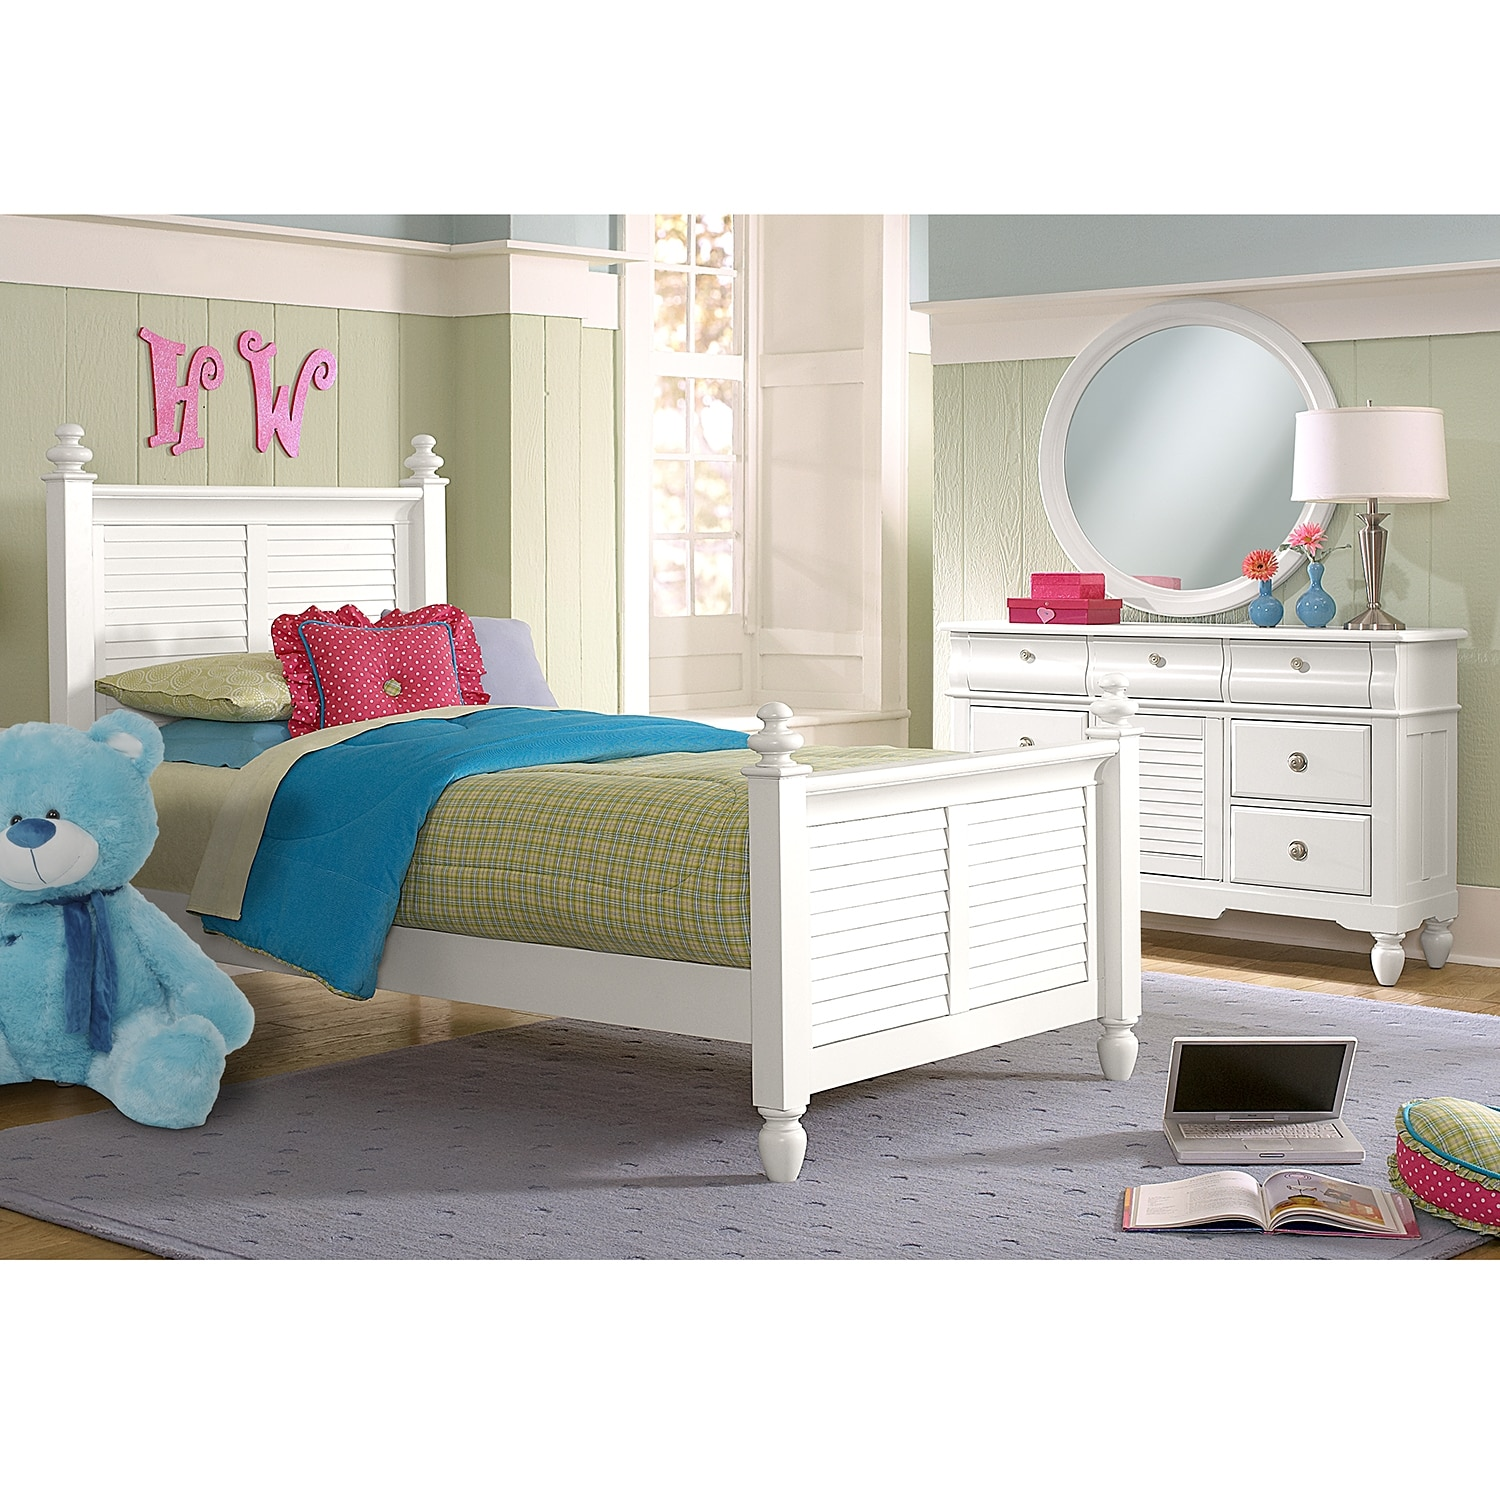 Seaside 6-Piece Full Bedroom Set With Trundle